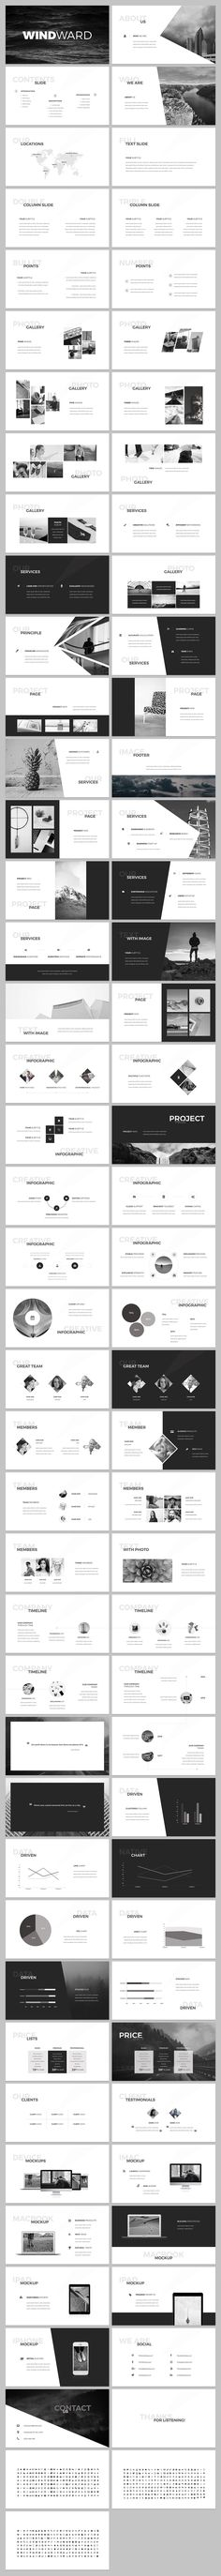 Xavier lpez xavierlpez on pinterest more ideas from xavier lpez toneelgroepblik Images